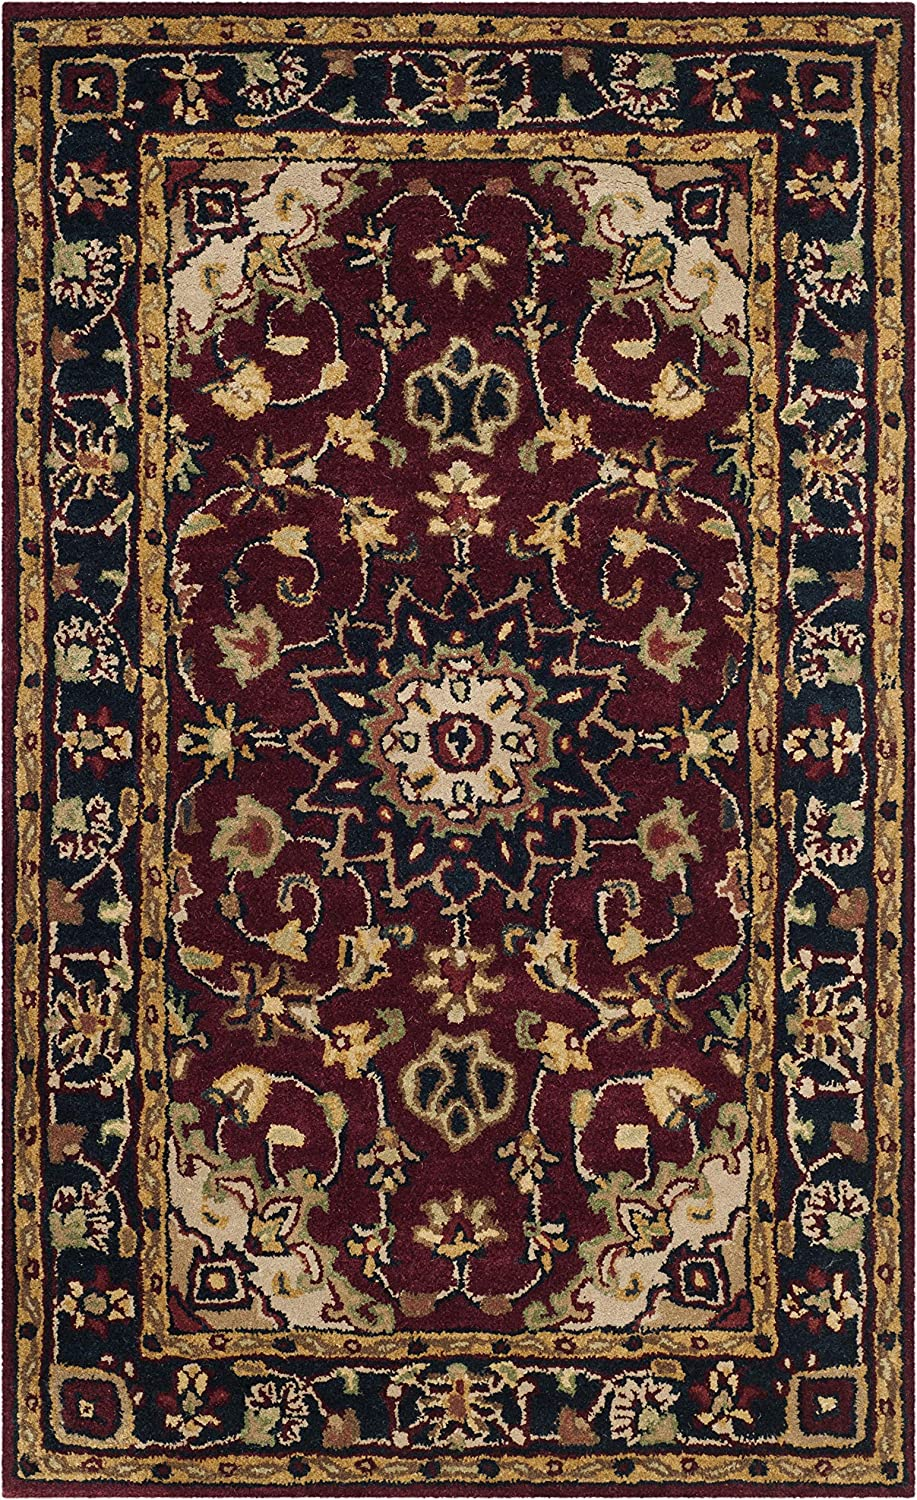 Safavieh Classic Collection Cl362a Handmade Traditional Oriental Premium Wool Accent Rug 2 X 3 Burgundy Navy Furniture Decor